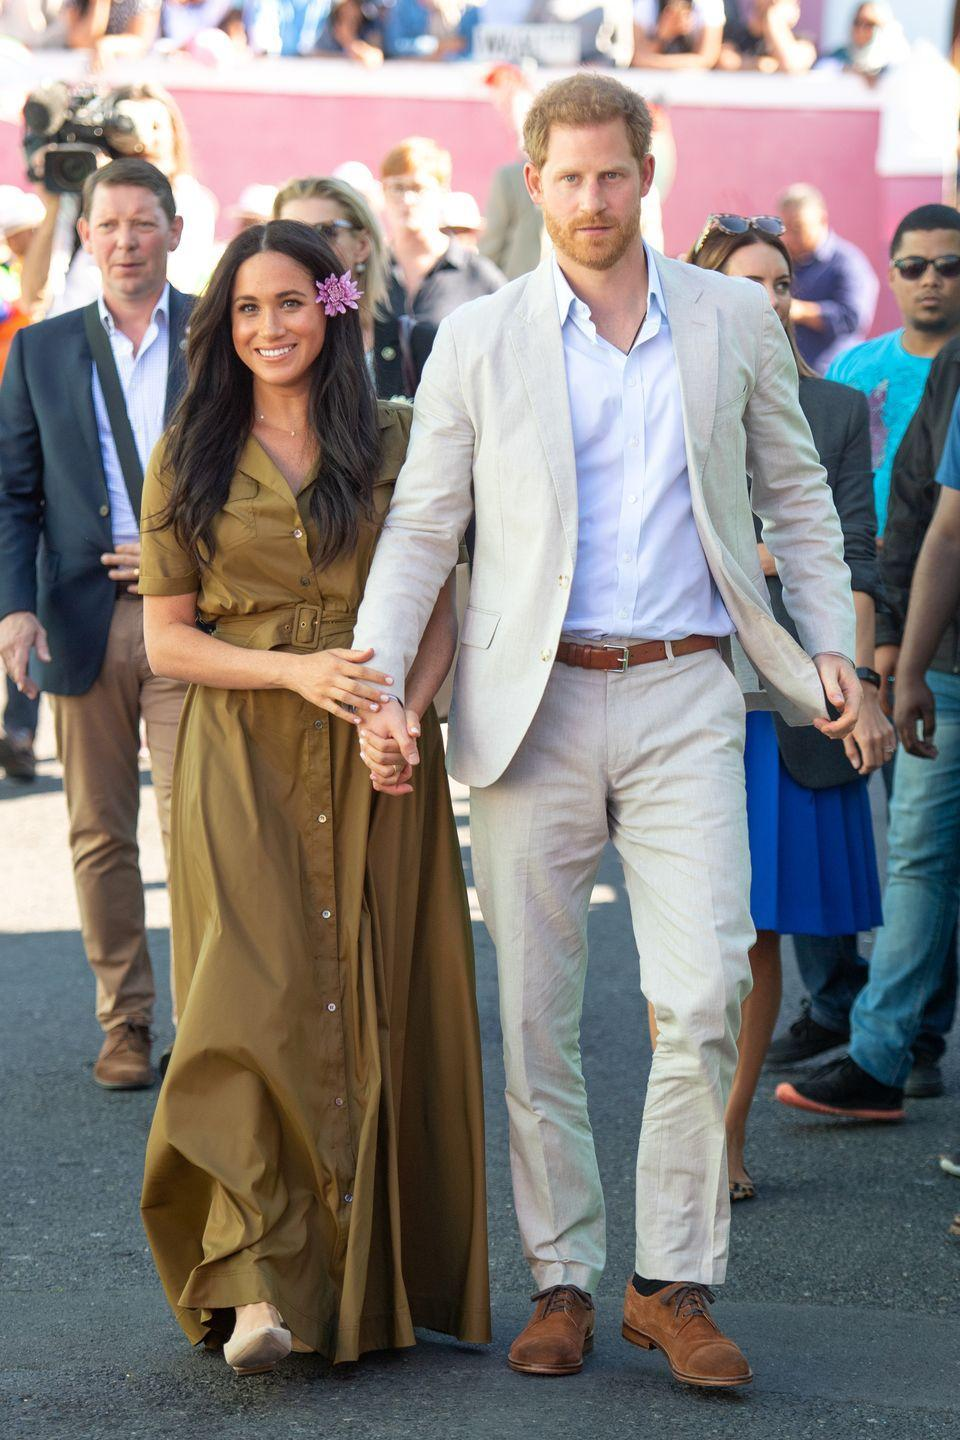 <p>Walking with their hands intwined together, the Duke and Duchess of Sussex greeted onlookers as they attended the Heritage Day public holiday celebrations in the Bo Kaap district of Cape Town on 24 September. </p>